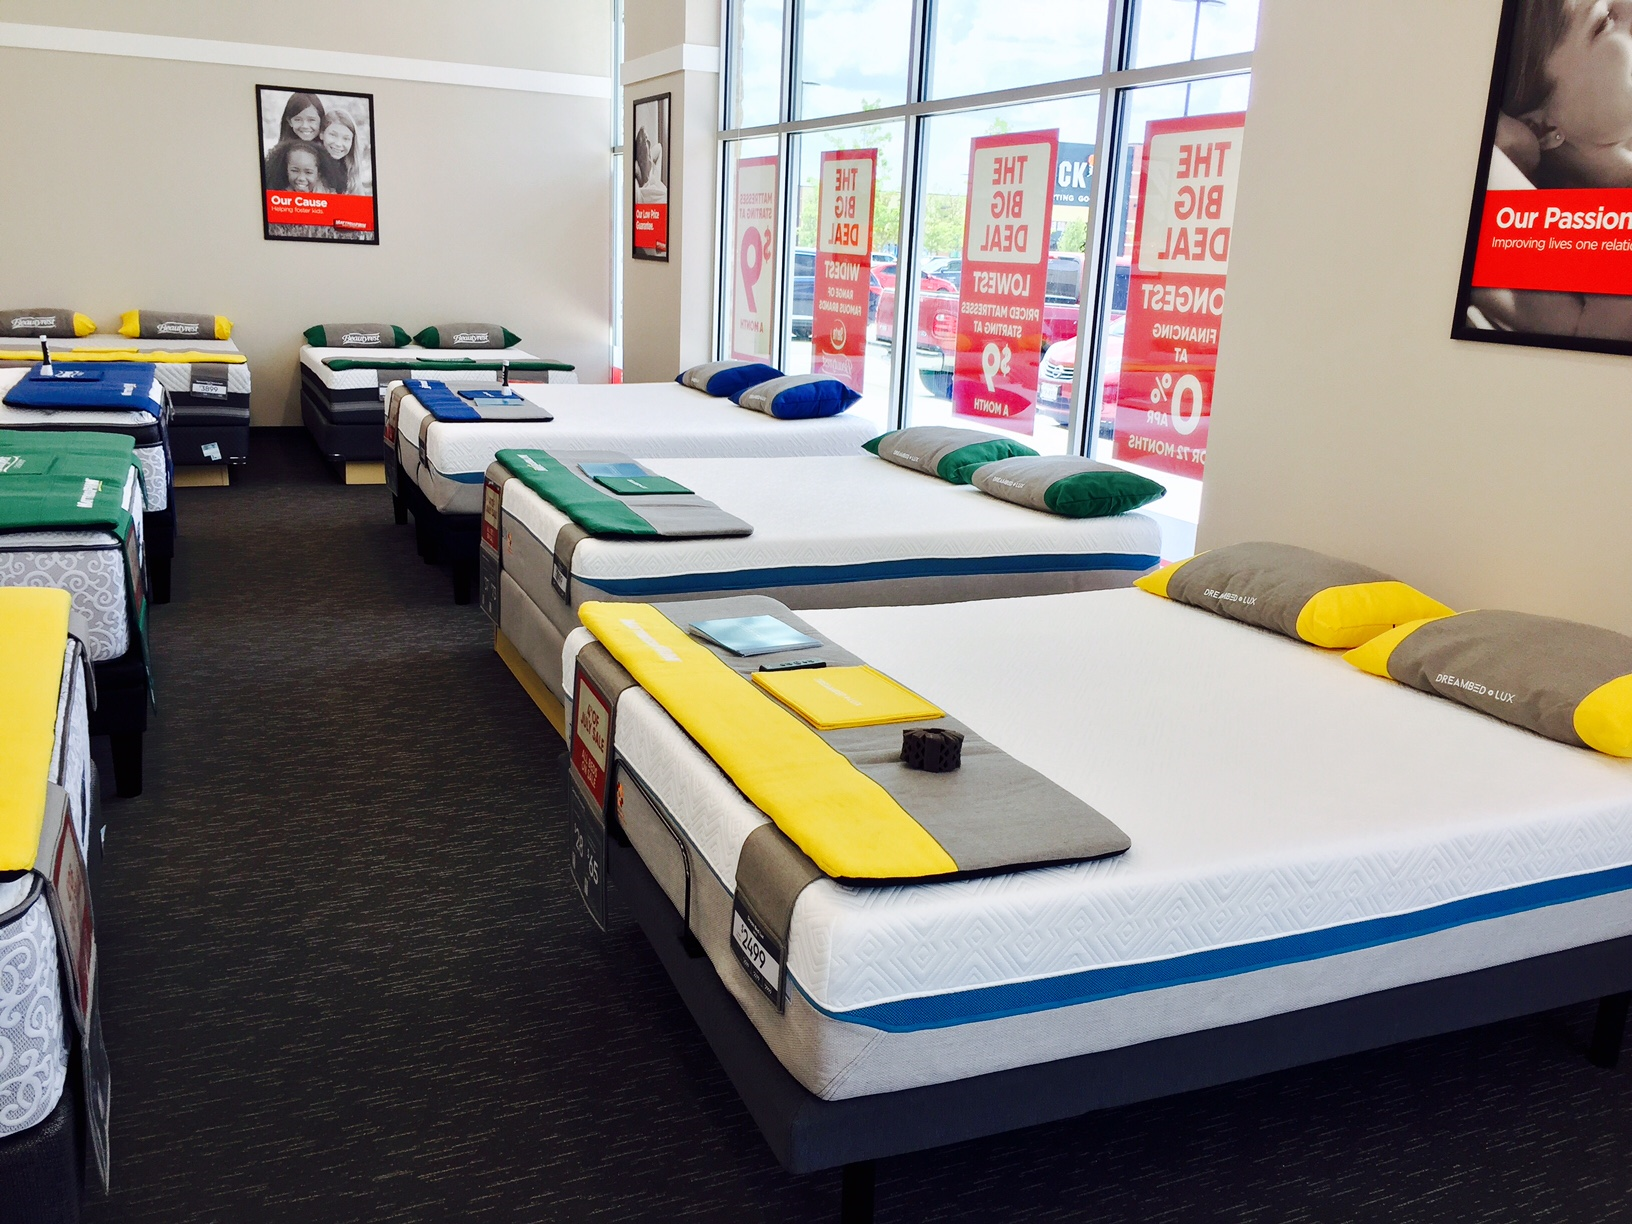 Mattress Firm Gates of Prosper image 2